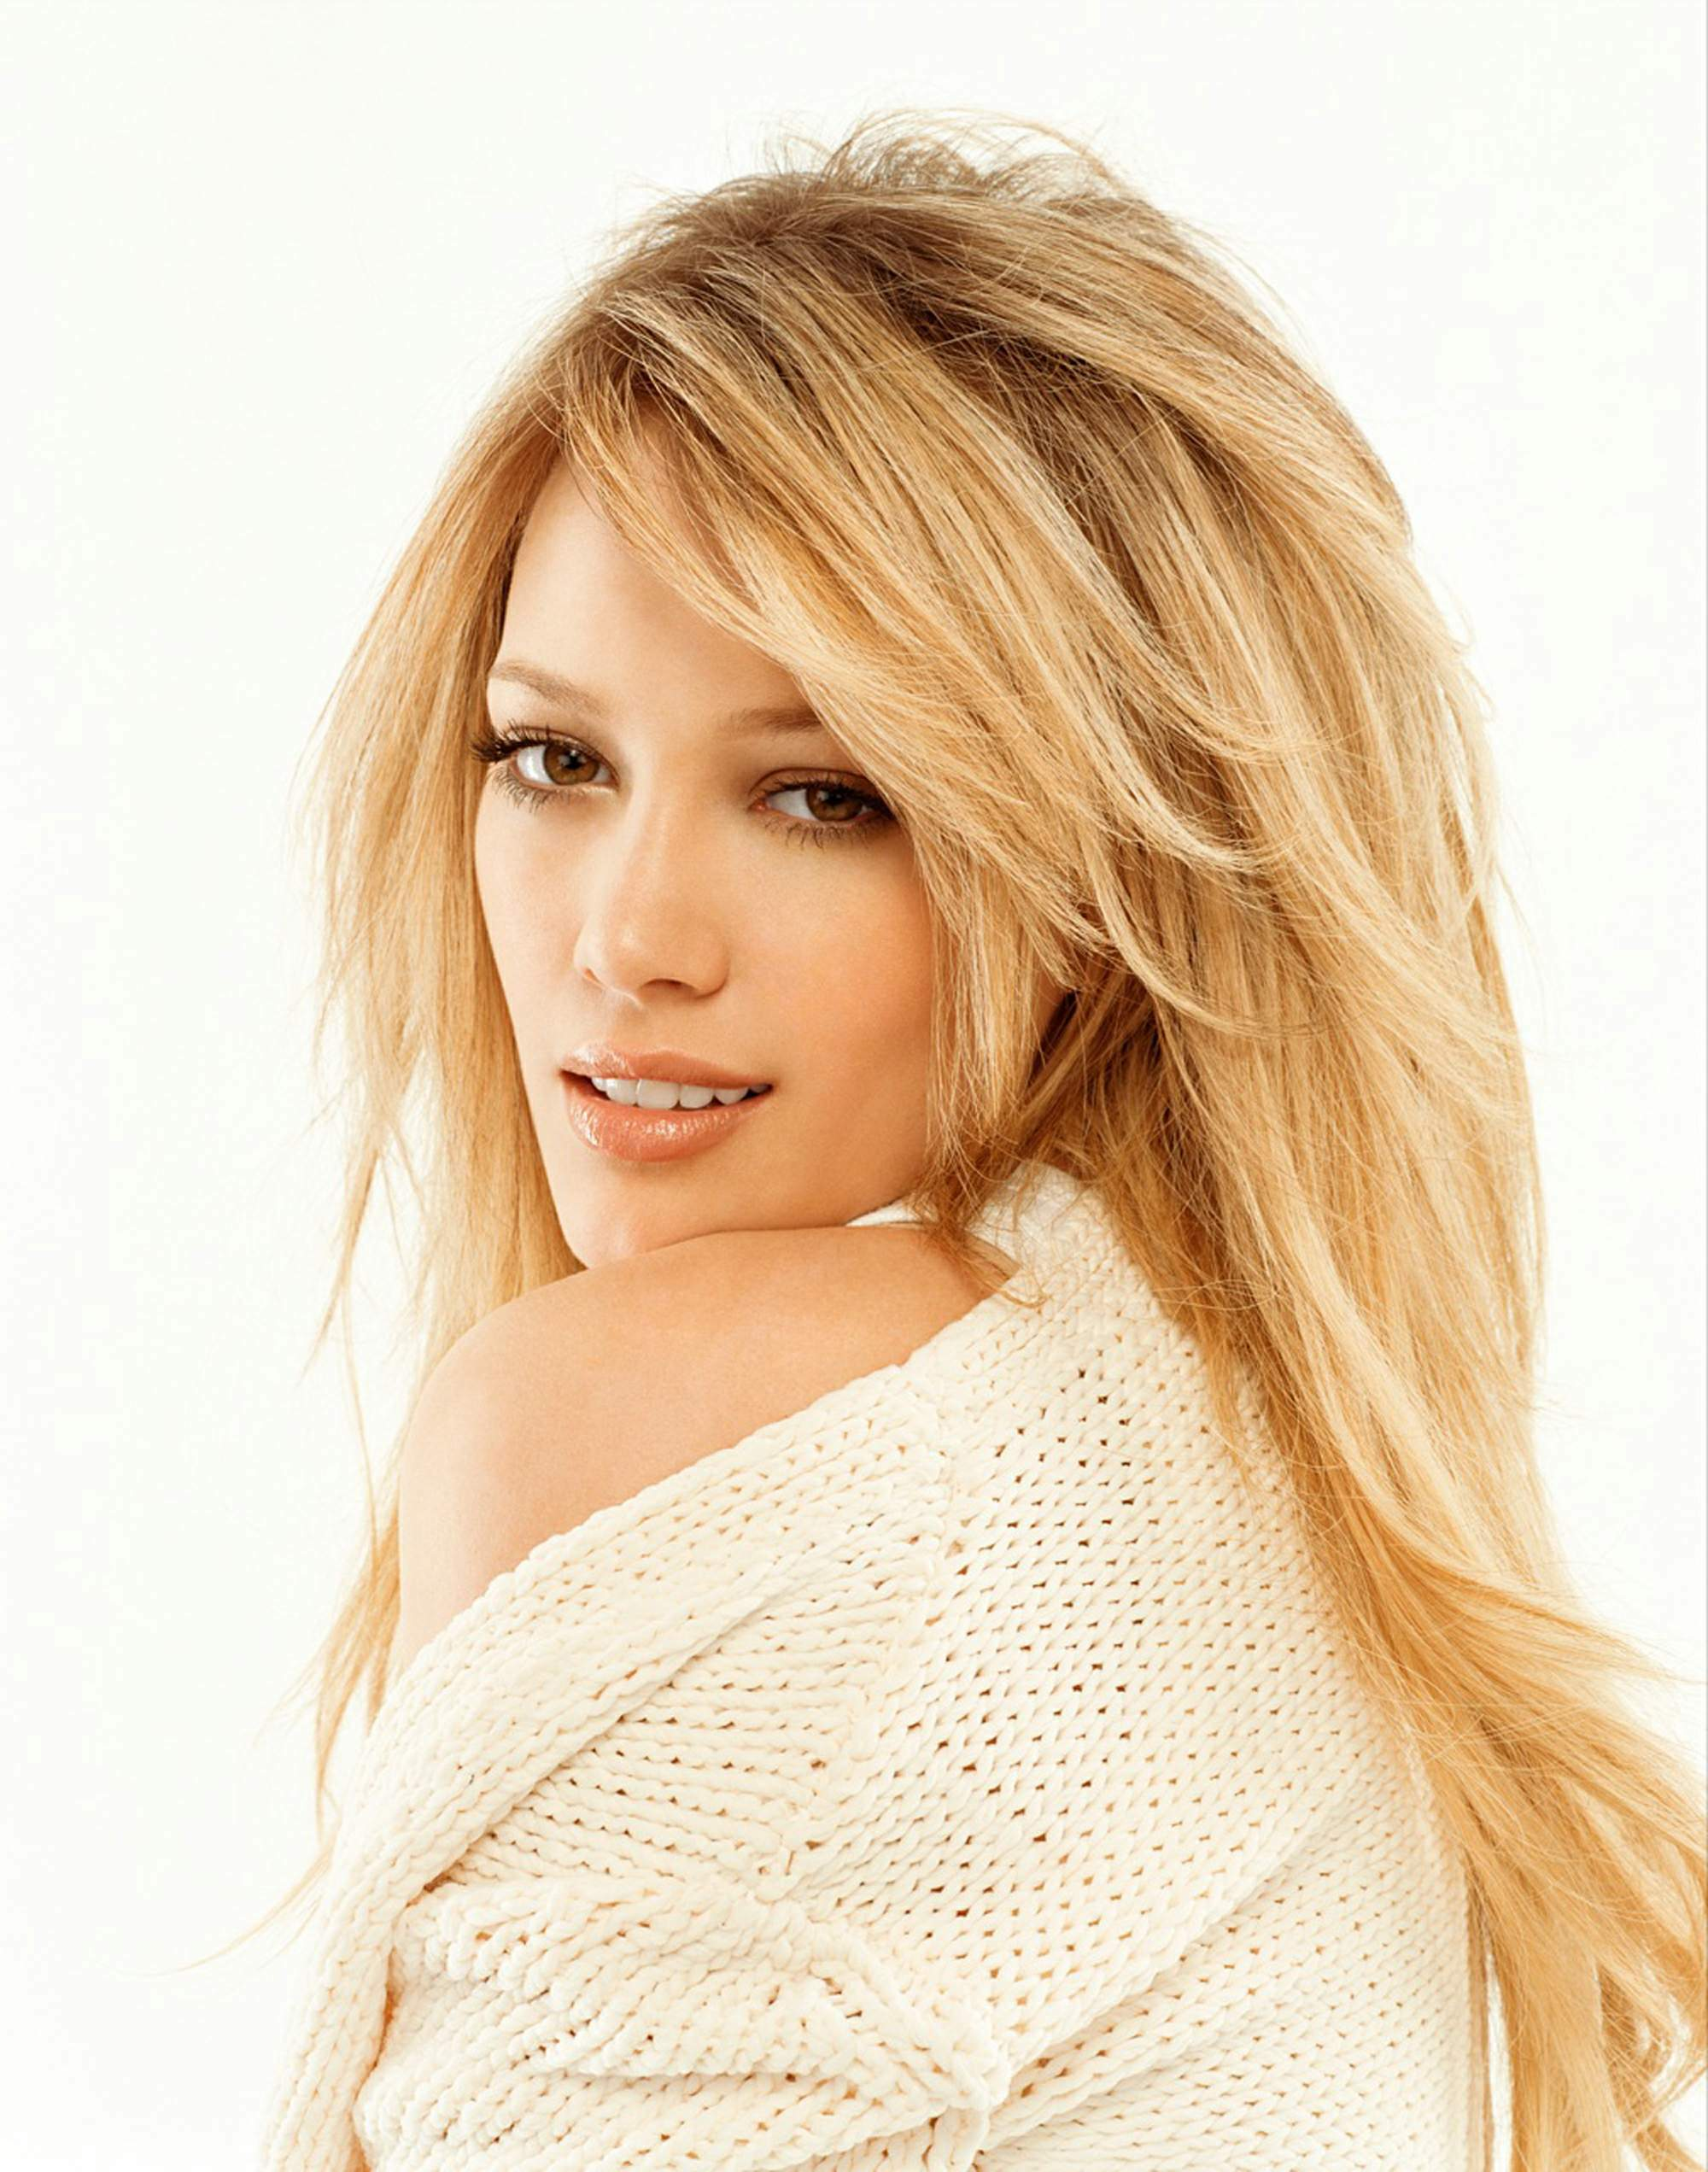 hilary duff Celebrity HD Wallpaper